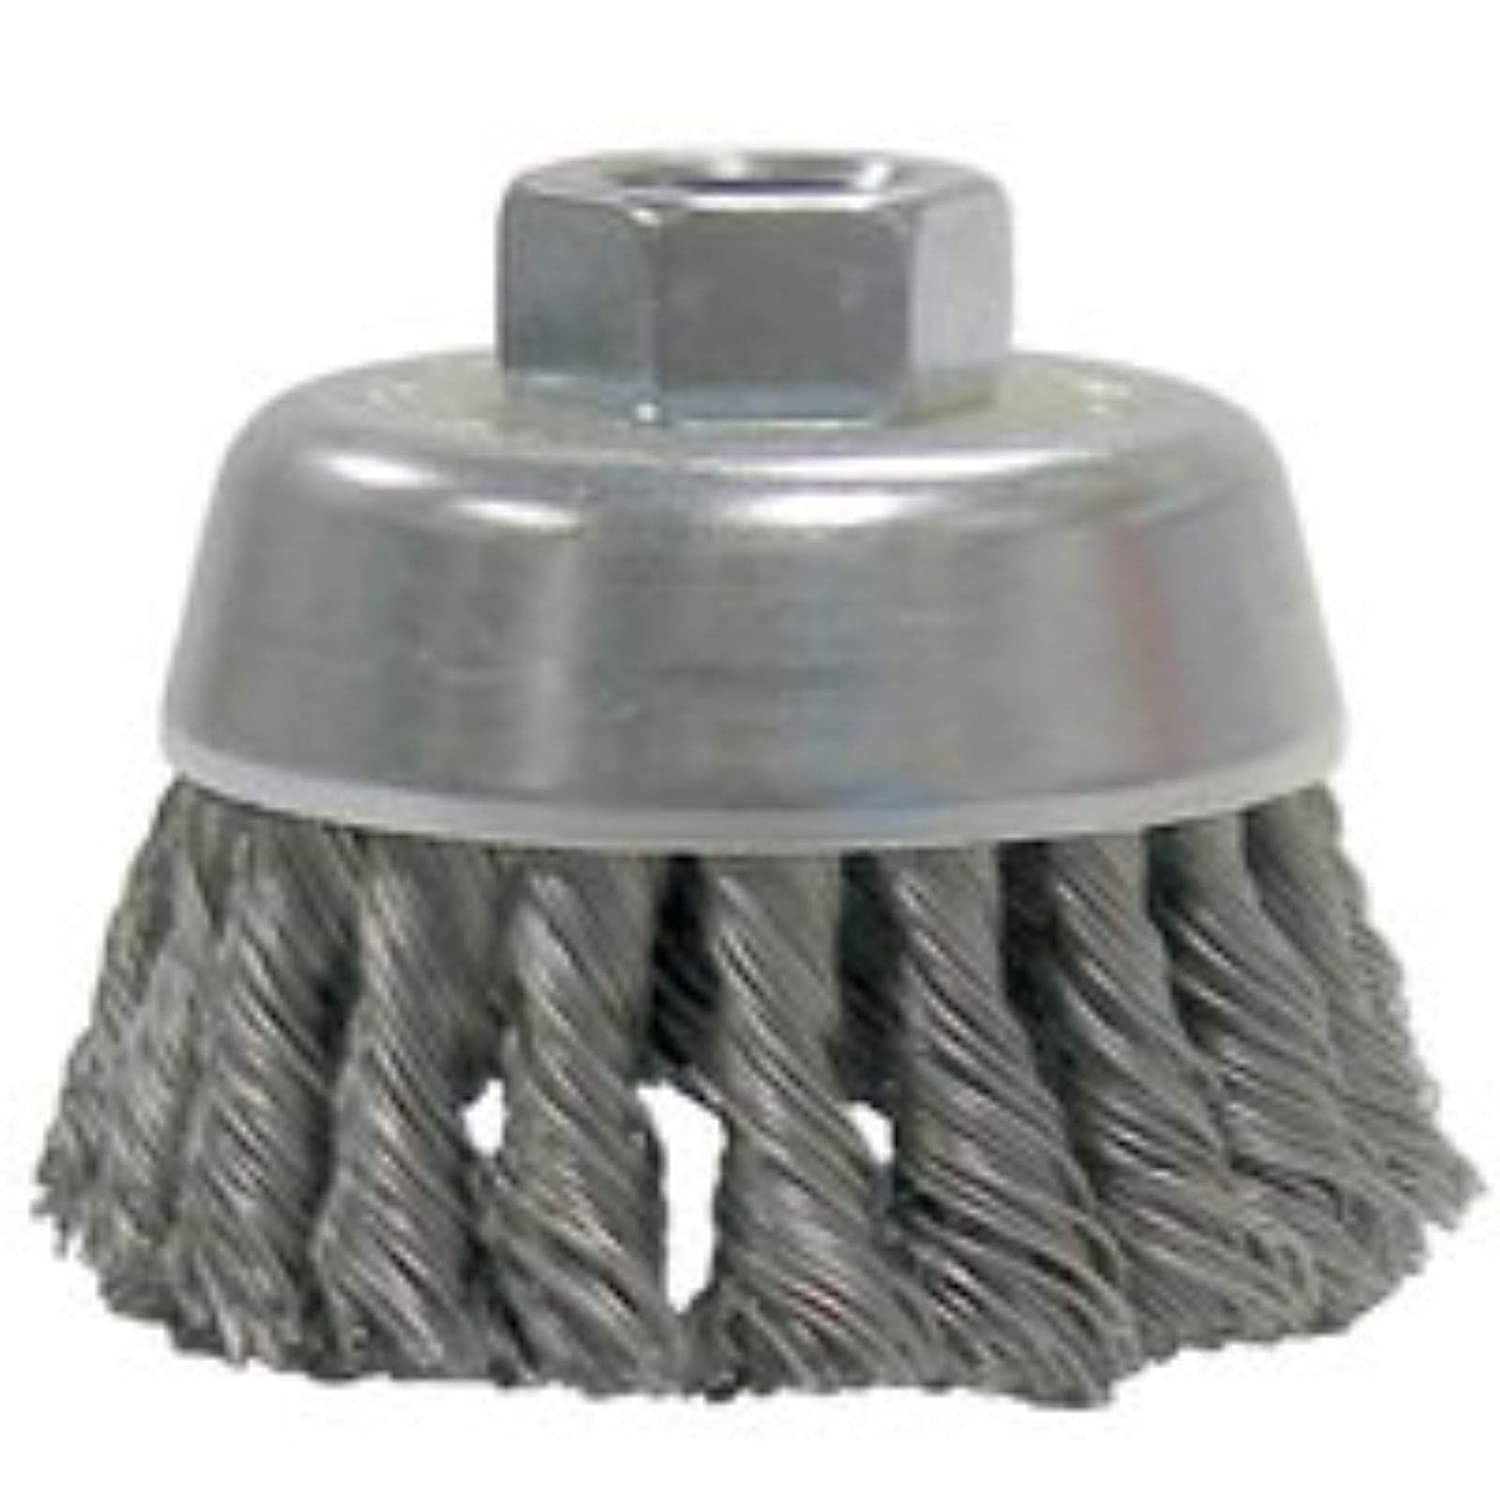 5//8-11 UNC Nut Weiler 13712 2-3//4 Single Row Hurricane Knot Wire Cup Brush.020 Steel Fill